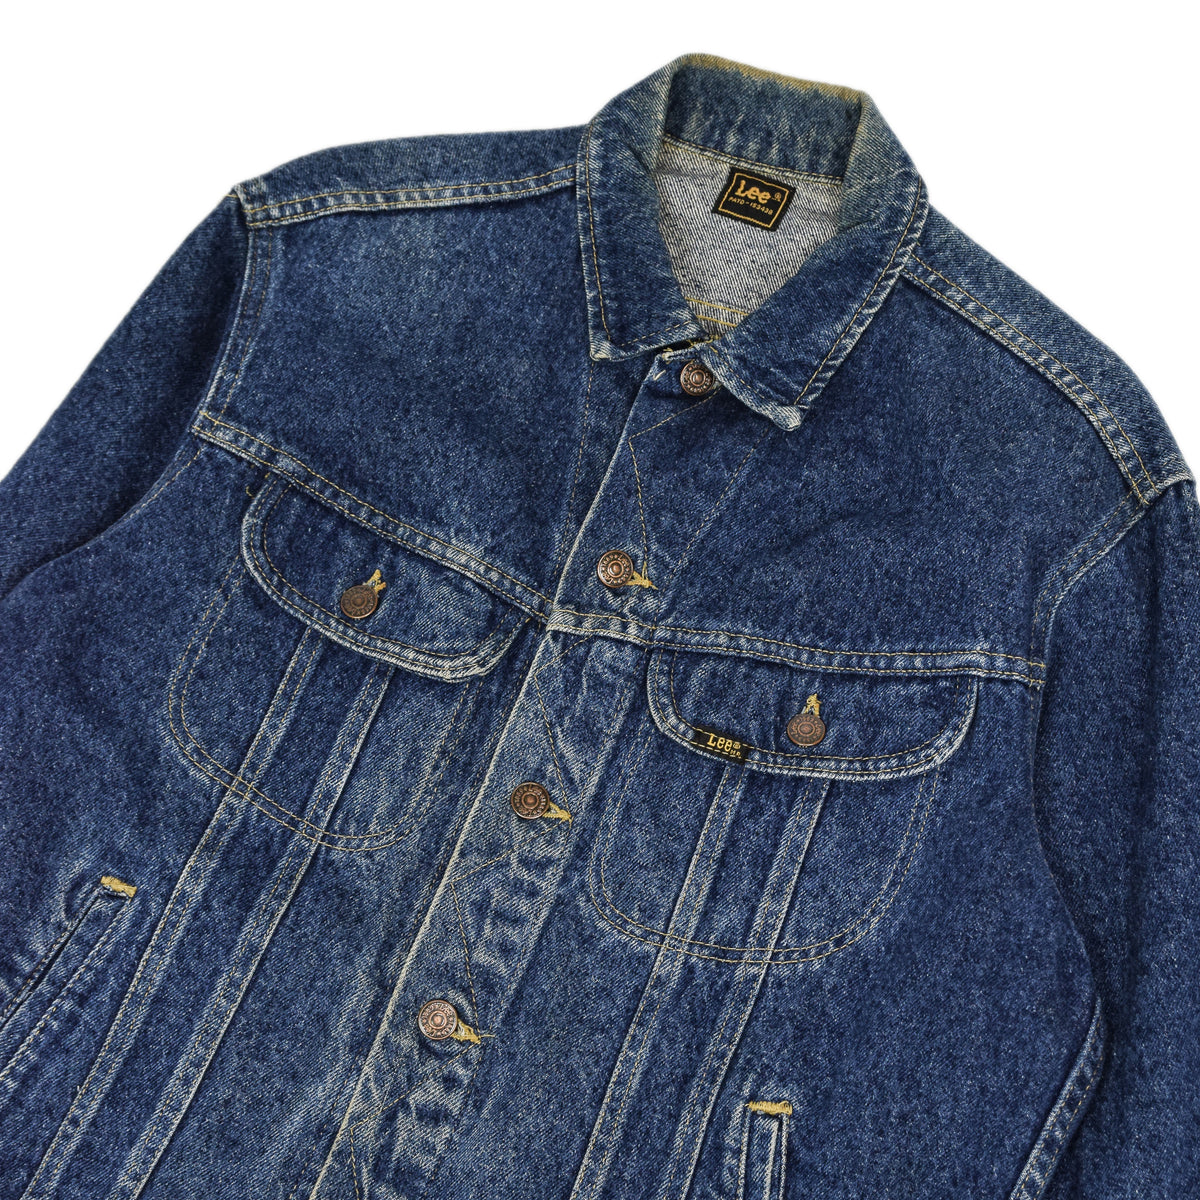 Vintage 70s Lee Washed Blue Denim Trucker Style Basic Jacket Made in USA M chest